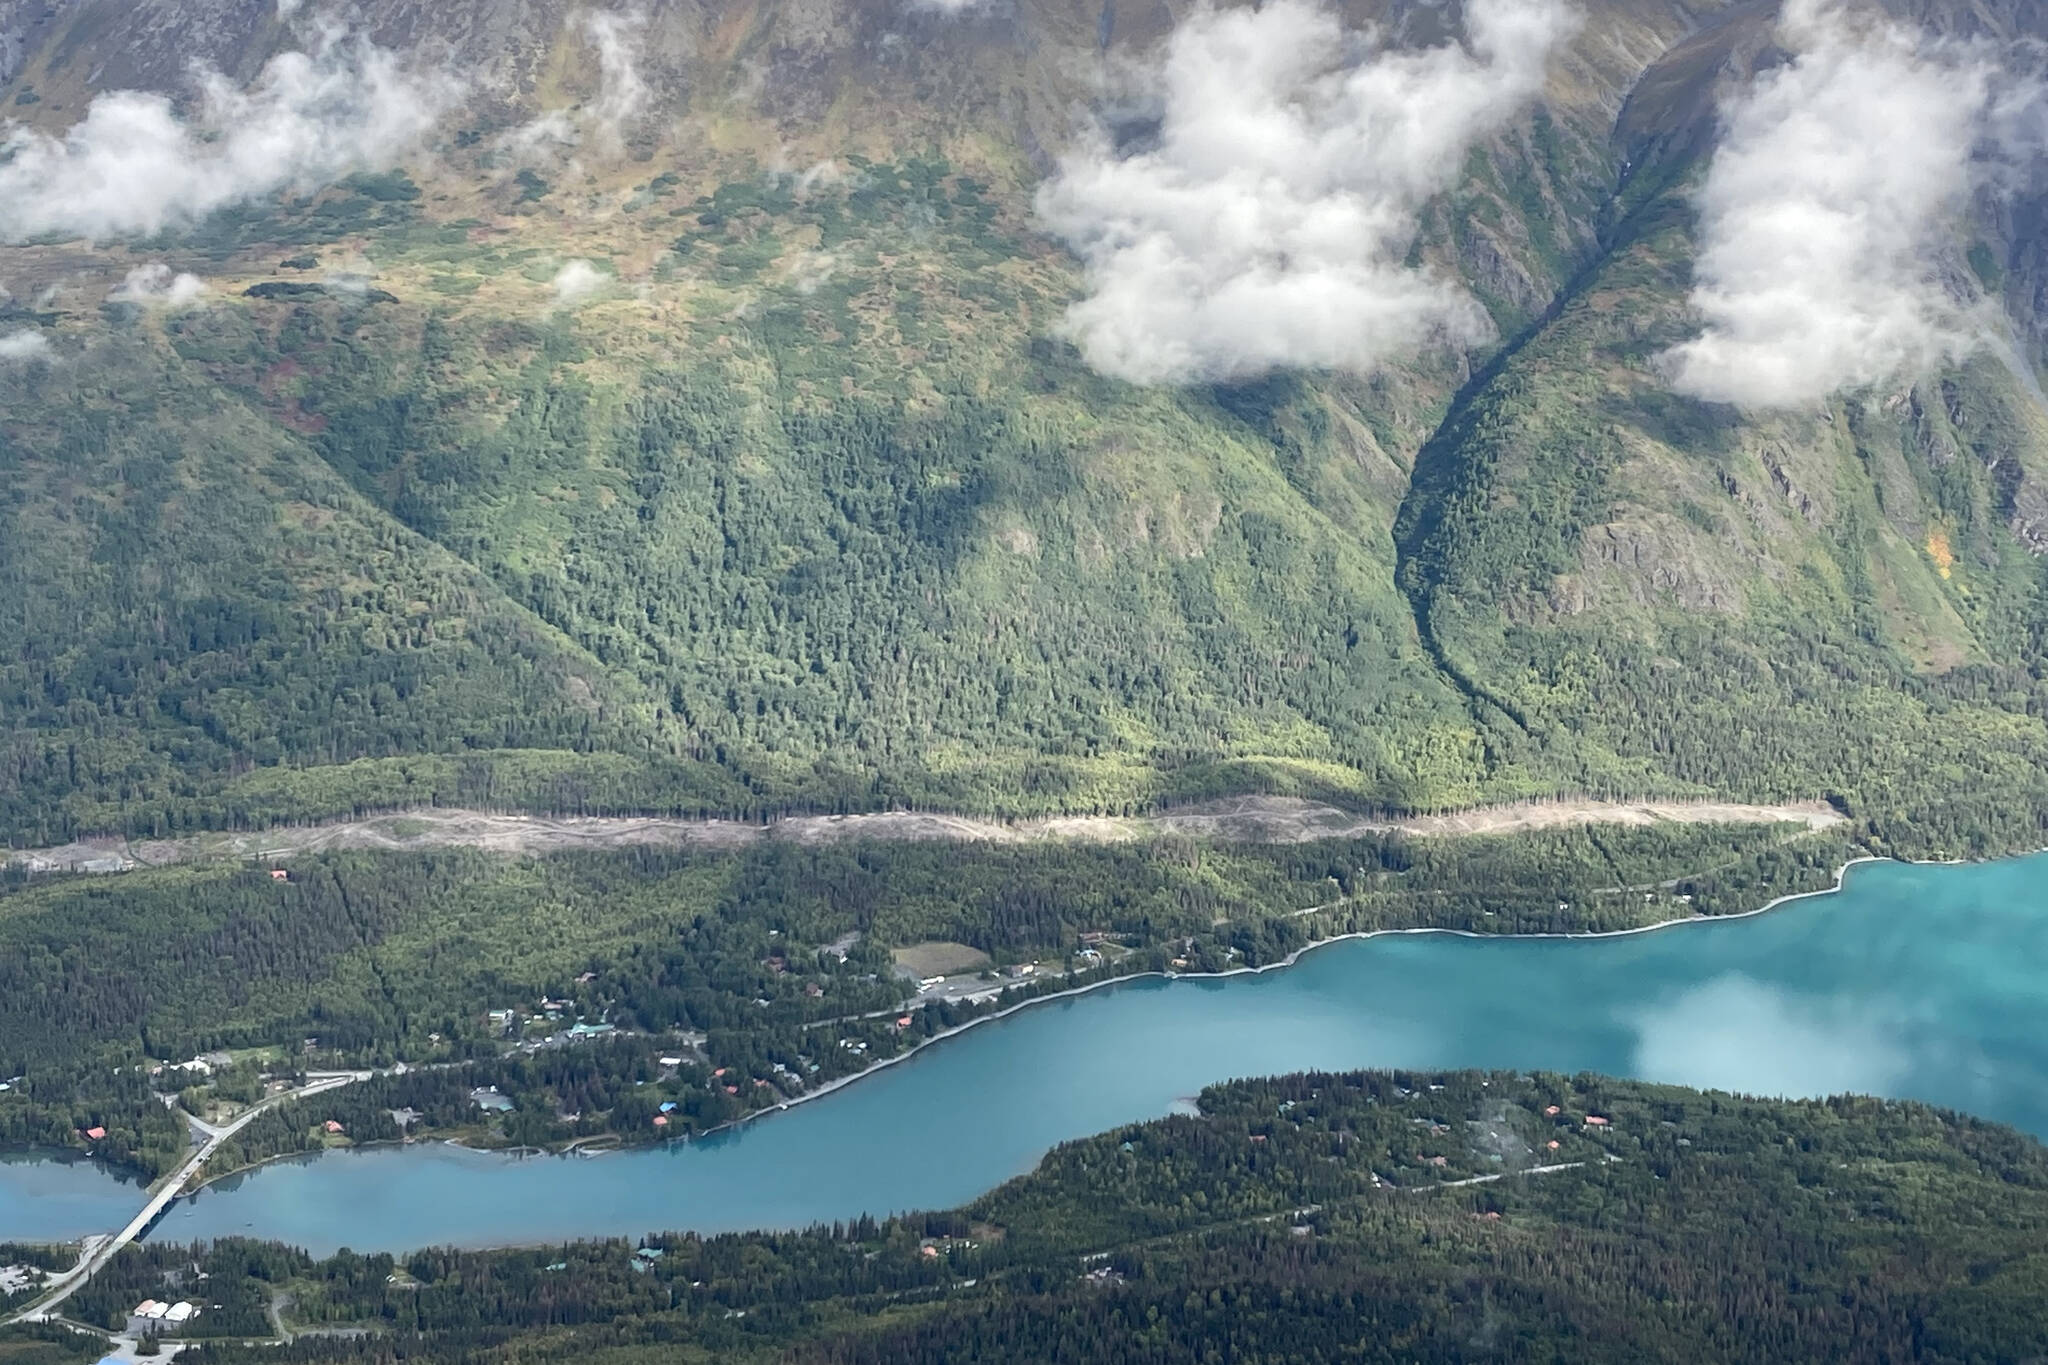 An area cleared to make way for the Cooper Landing Bypass project can be seen above the intersection of the Kenai River and Kenai Lake in Cooper Landing, Alaska, on Sept. 6, 2021. (Photo by Jeff Helminiak/Peninsula Clarion)